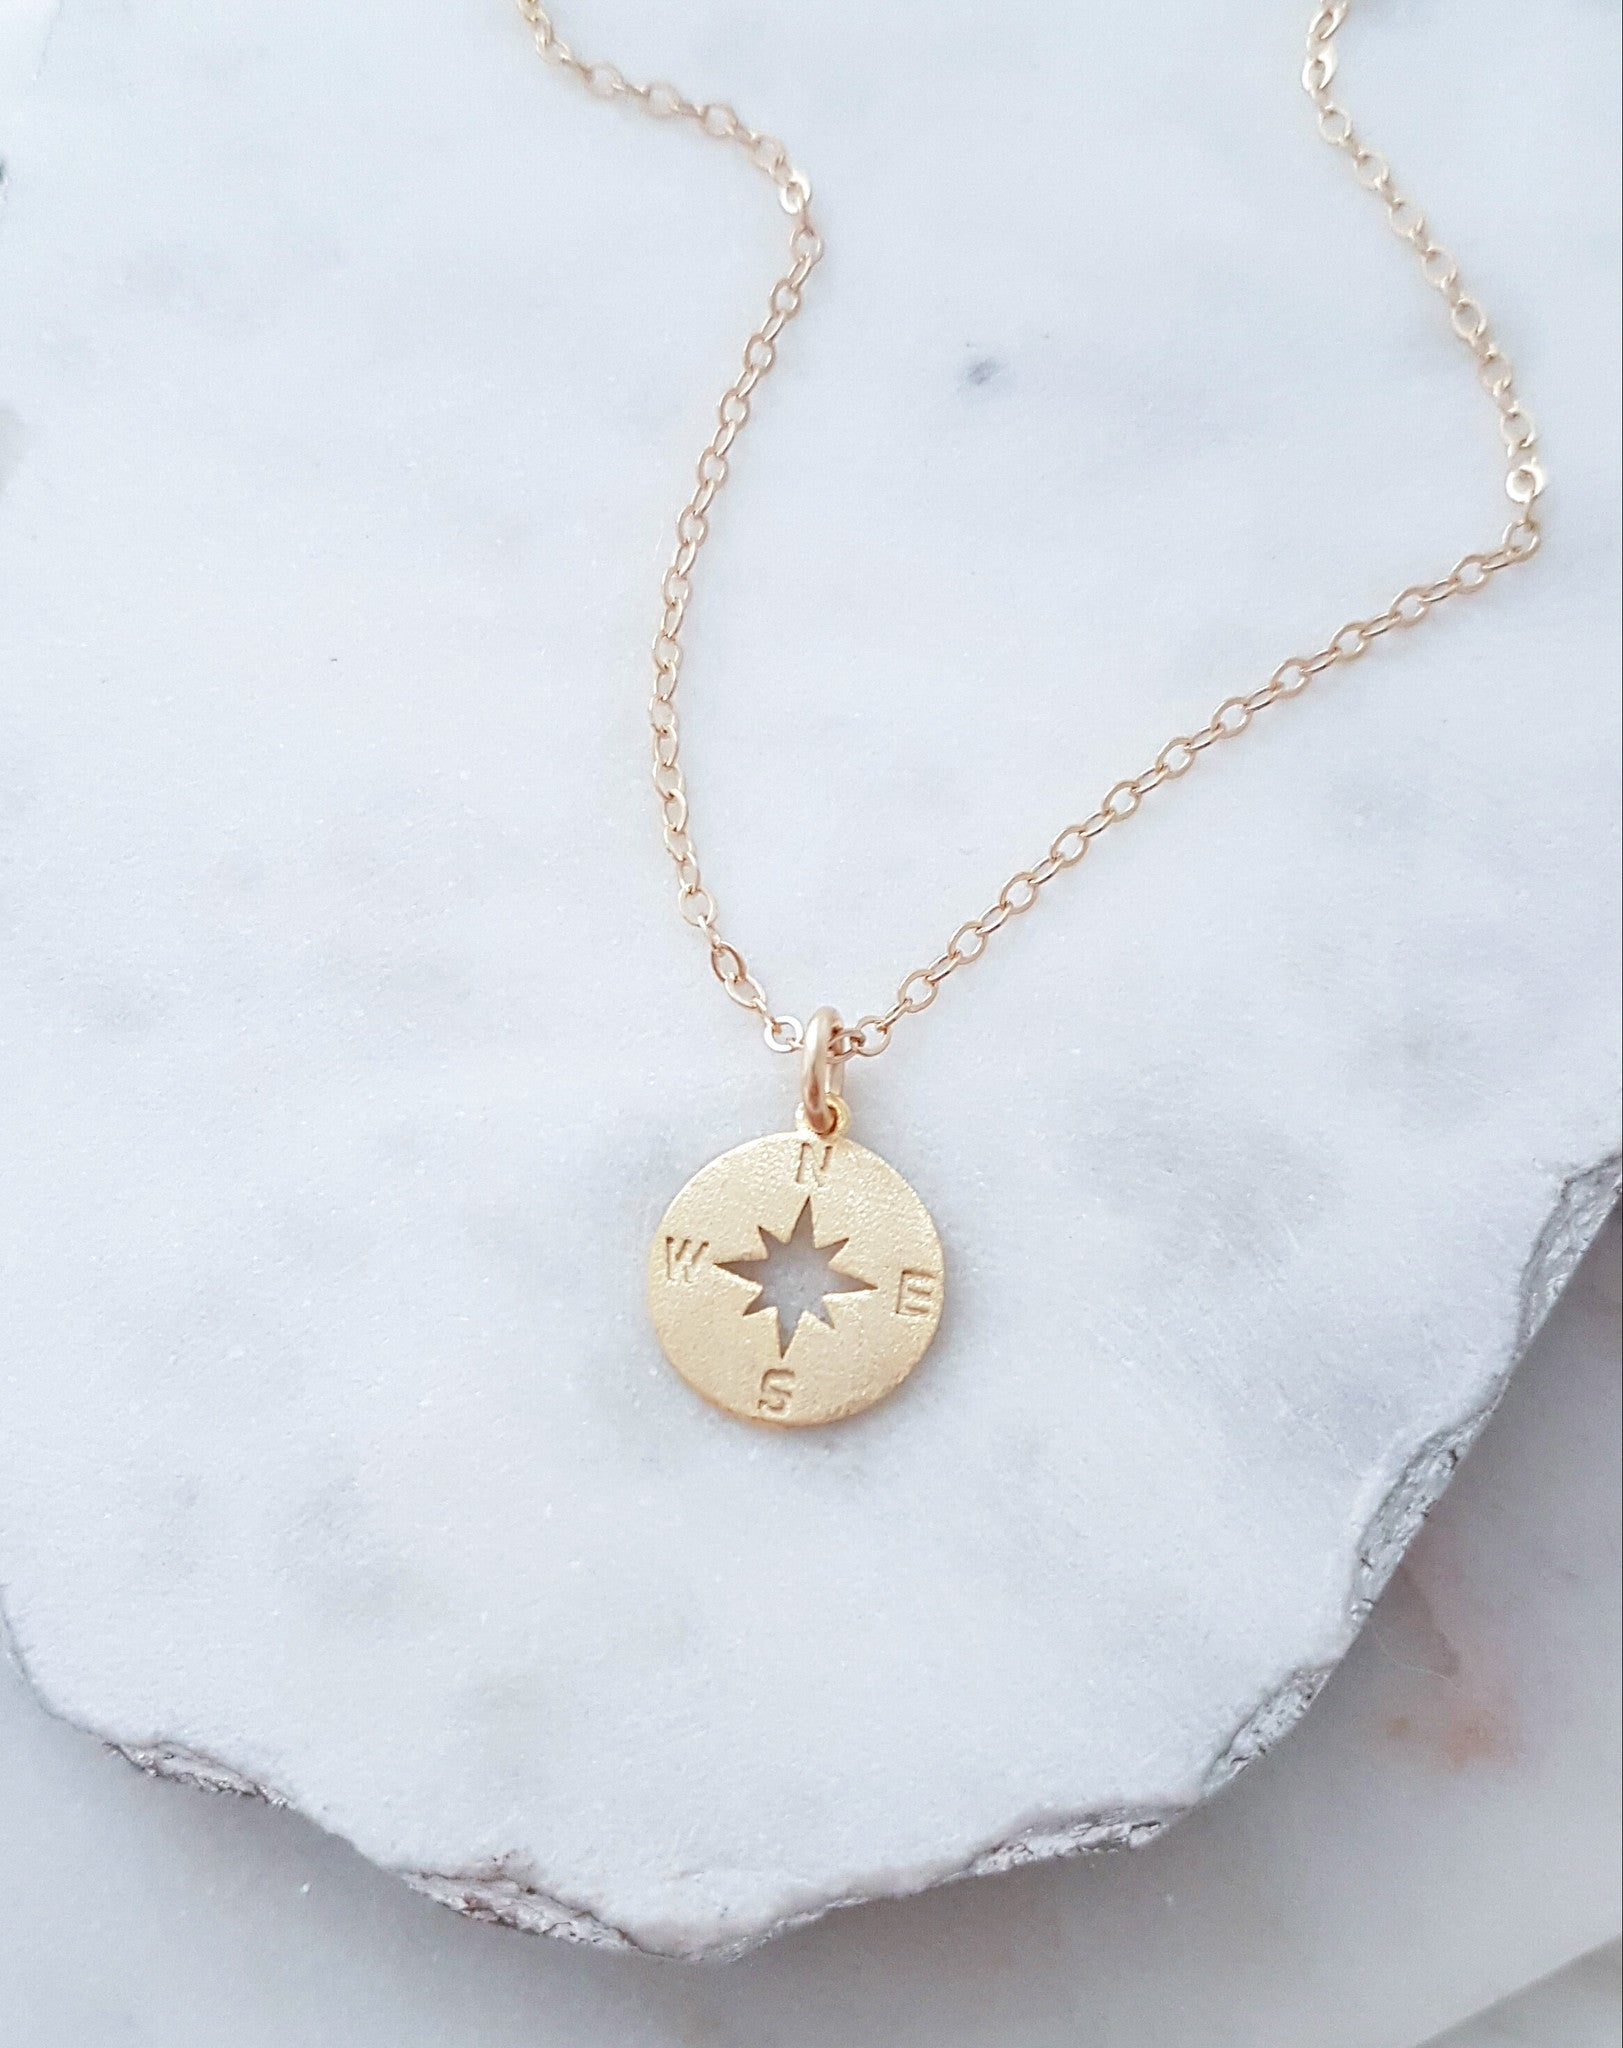 compass customer diamond necklace vermeil silver with golden favorite new necklaces